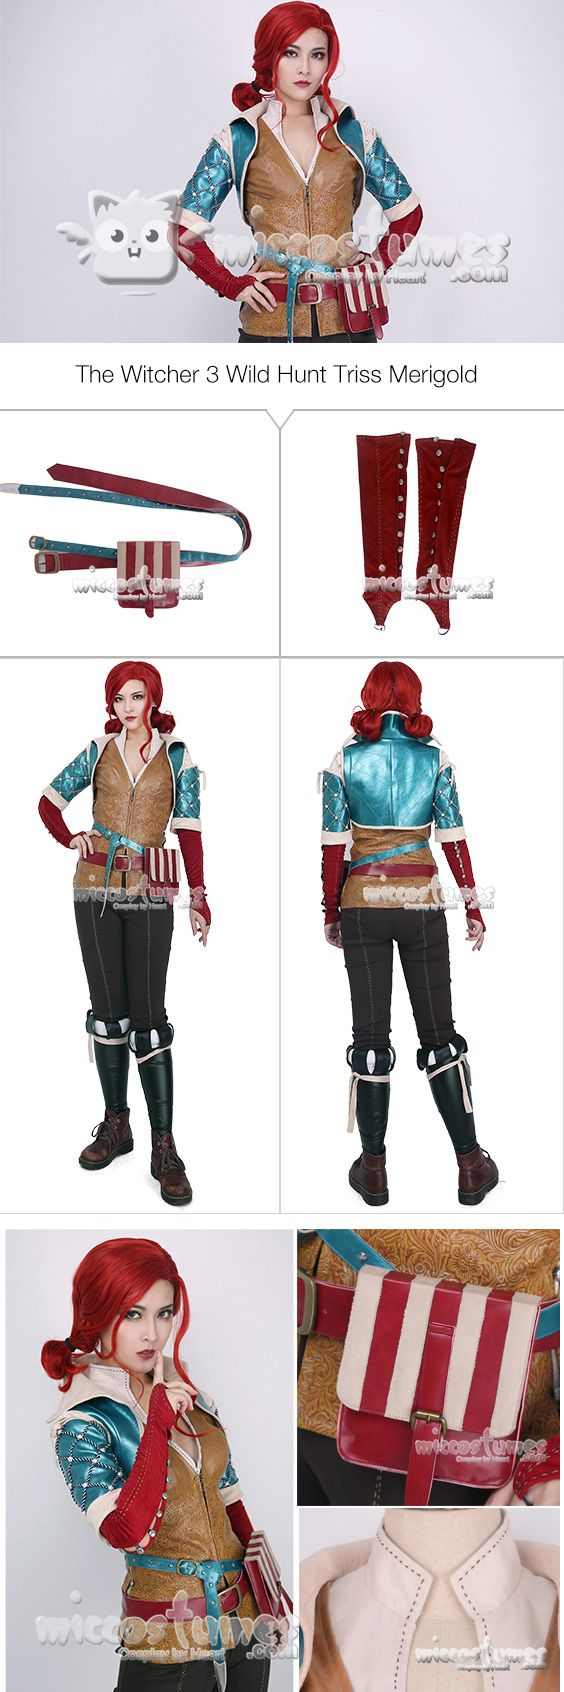 More details of the Witcher 3 Wild Hunt Triss Merigold Cosplay Costume with belts set sells at Miccostumes.com #cosplay #miccostumes #TheWitcher3 #WildHunt #Triss #TrissMerigold #CosplayCostume #thewitcher3cosplay #trisscosplay